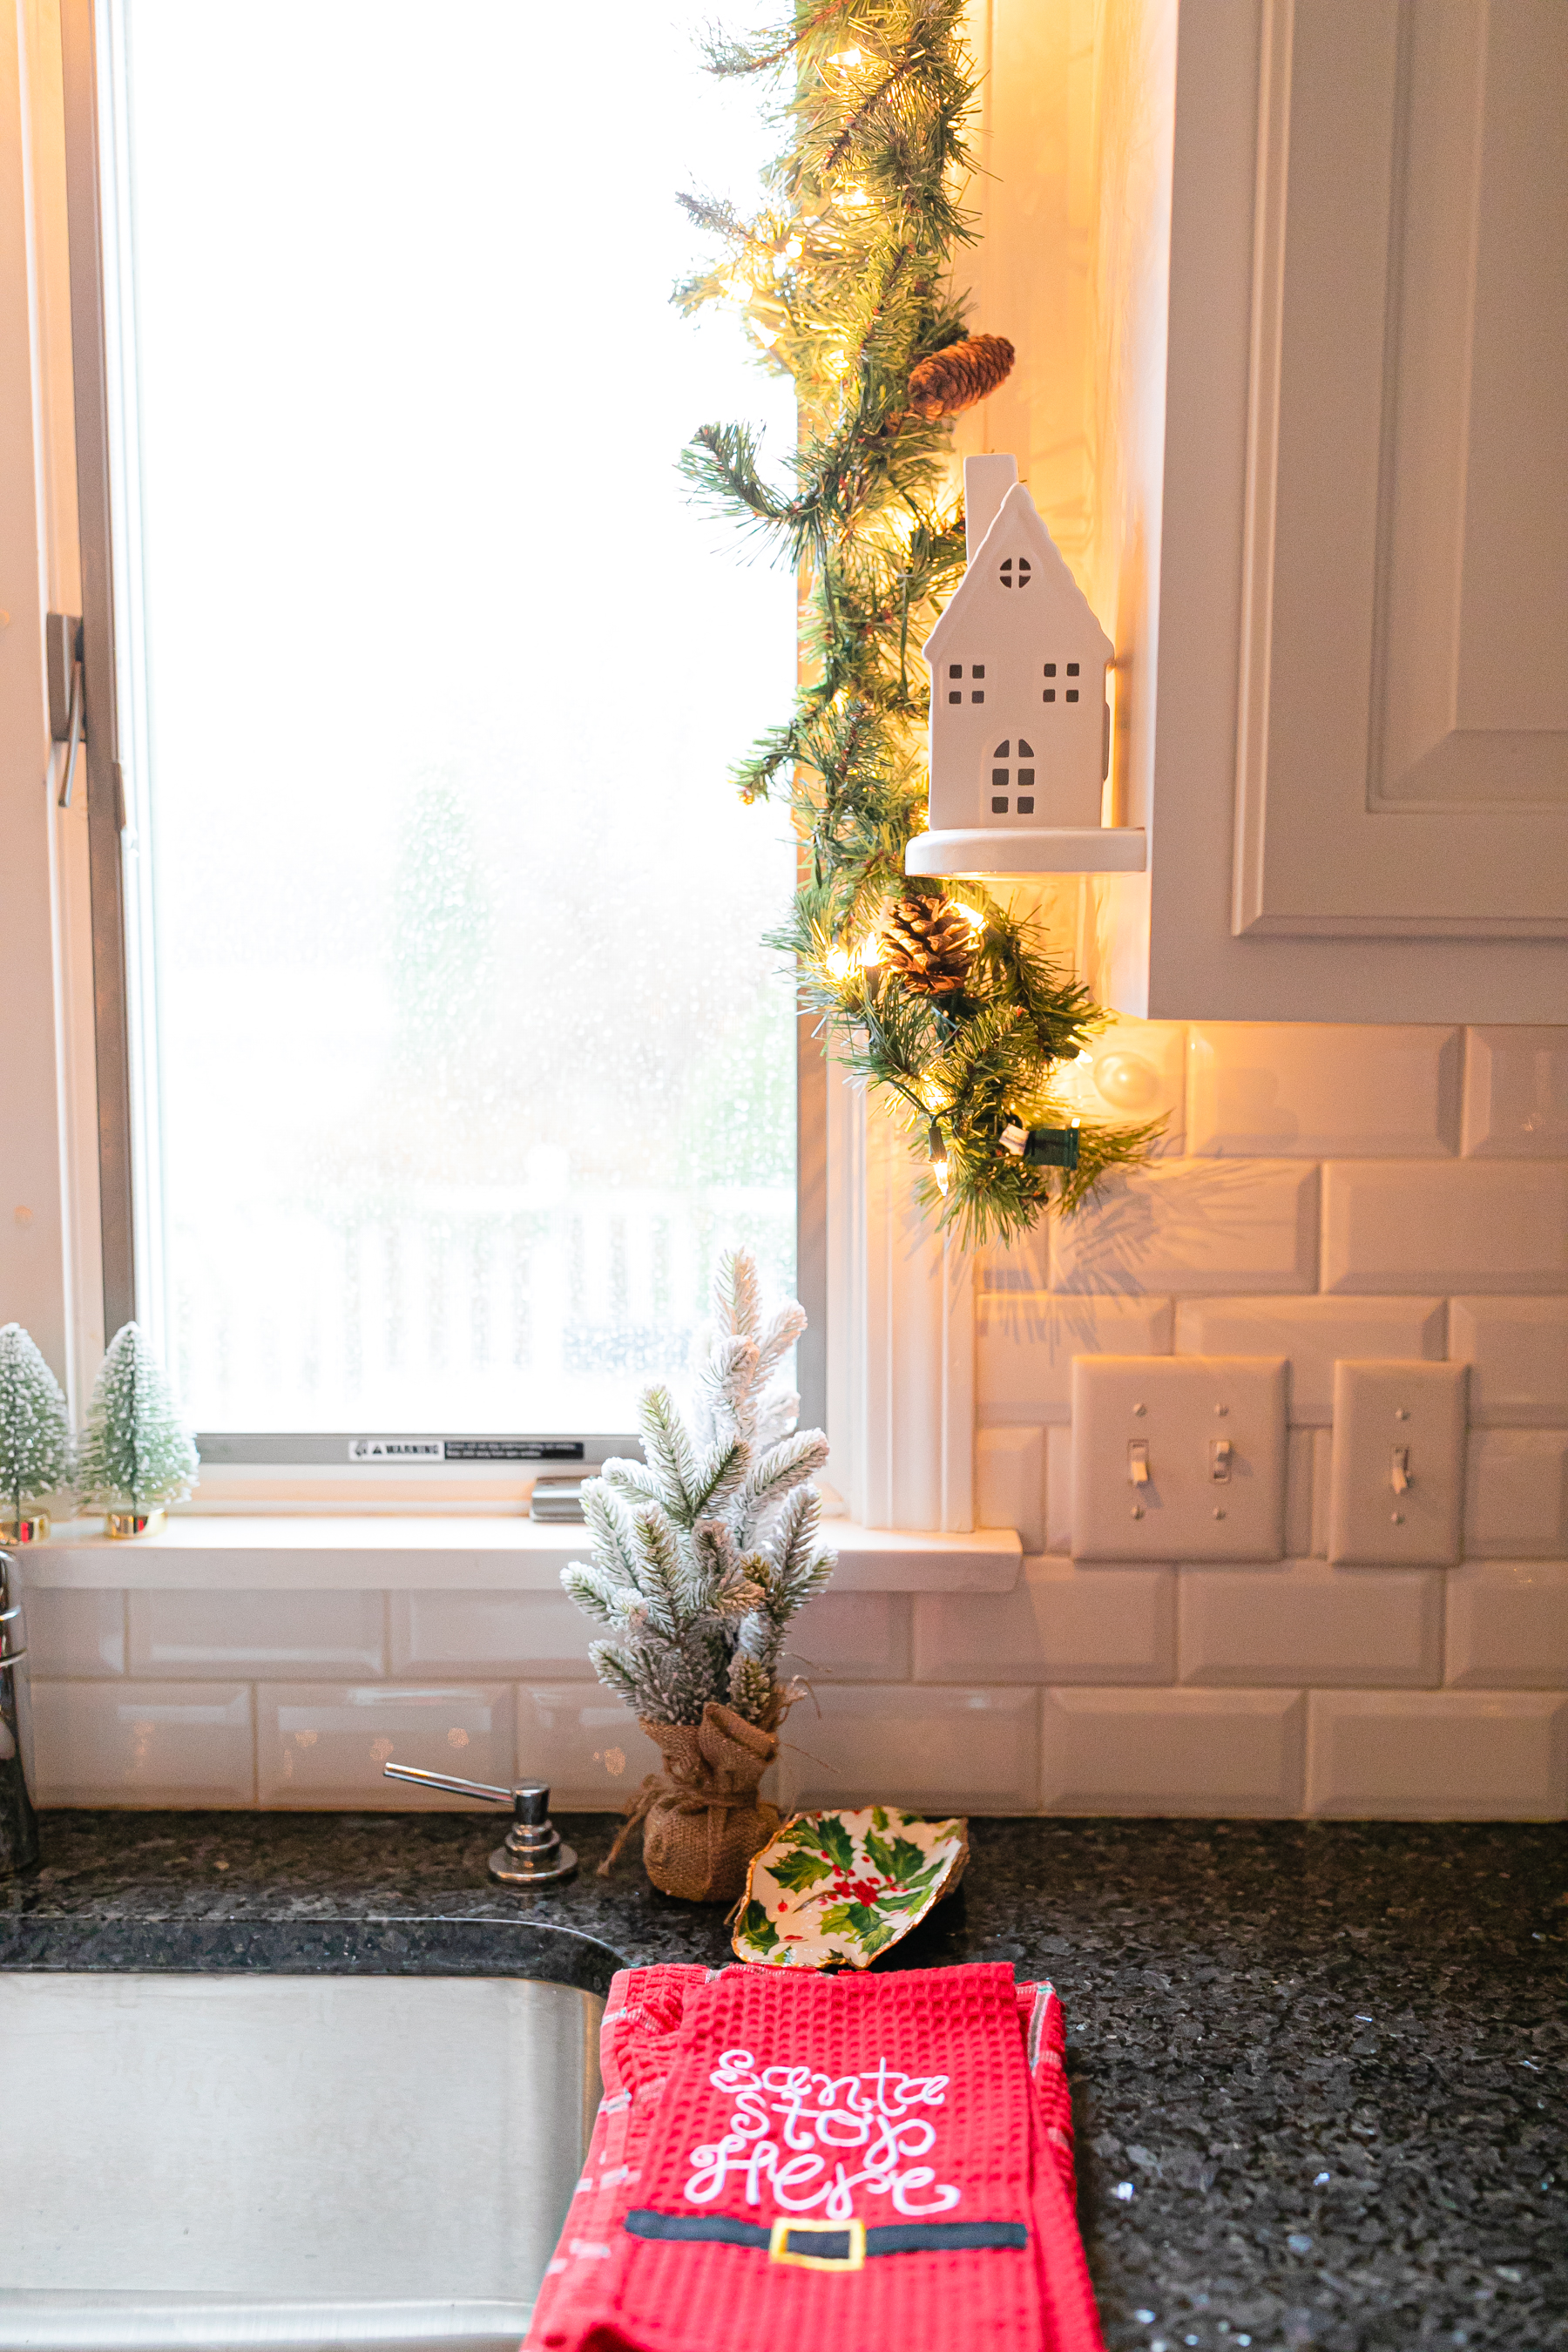 real garland above kitchen sink with lights